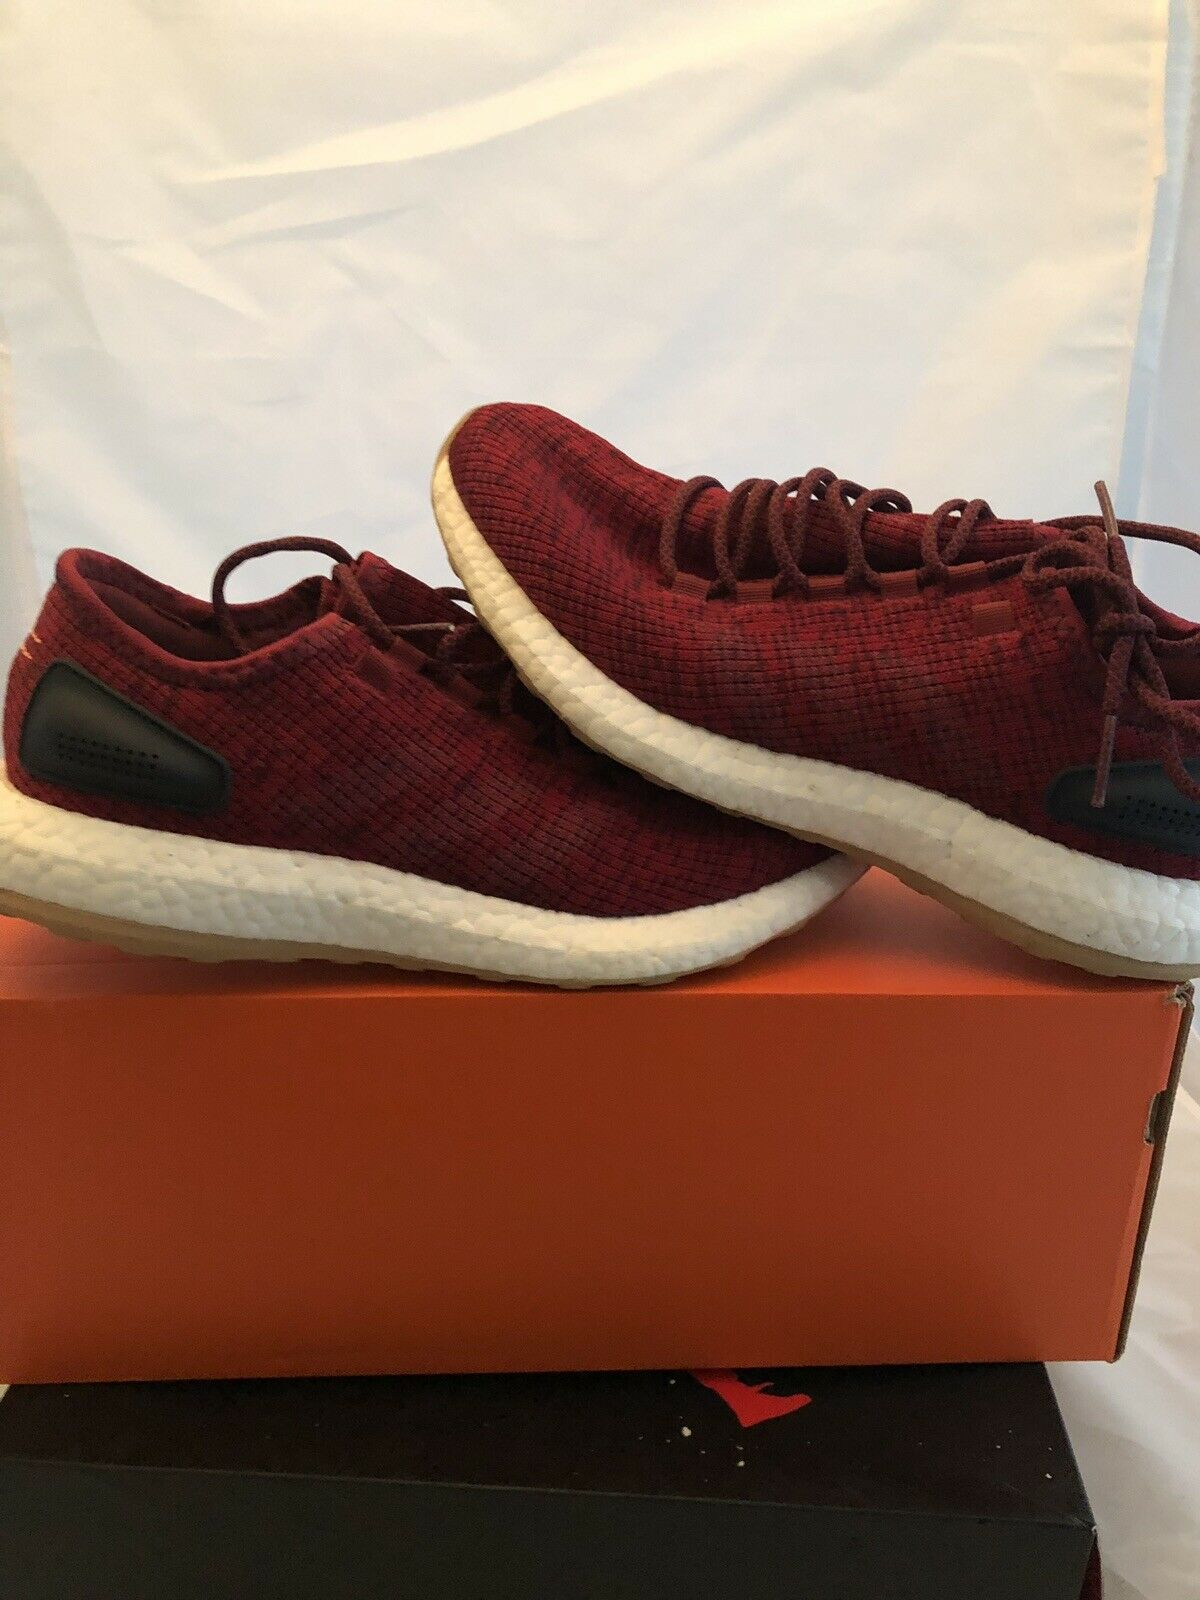 ADIDAS PUREBOOST RUNNING GYM TRAINING SHOES PRIMEKNIT BURGUNDY MENS SIZE 8.5